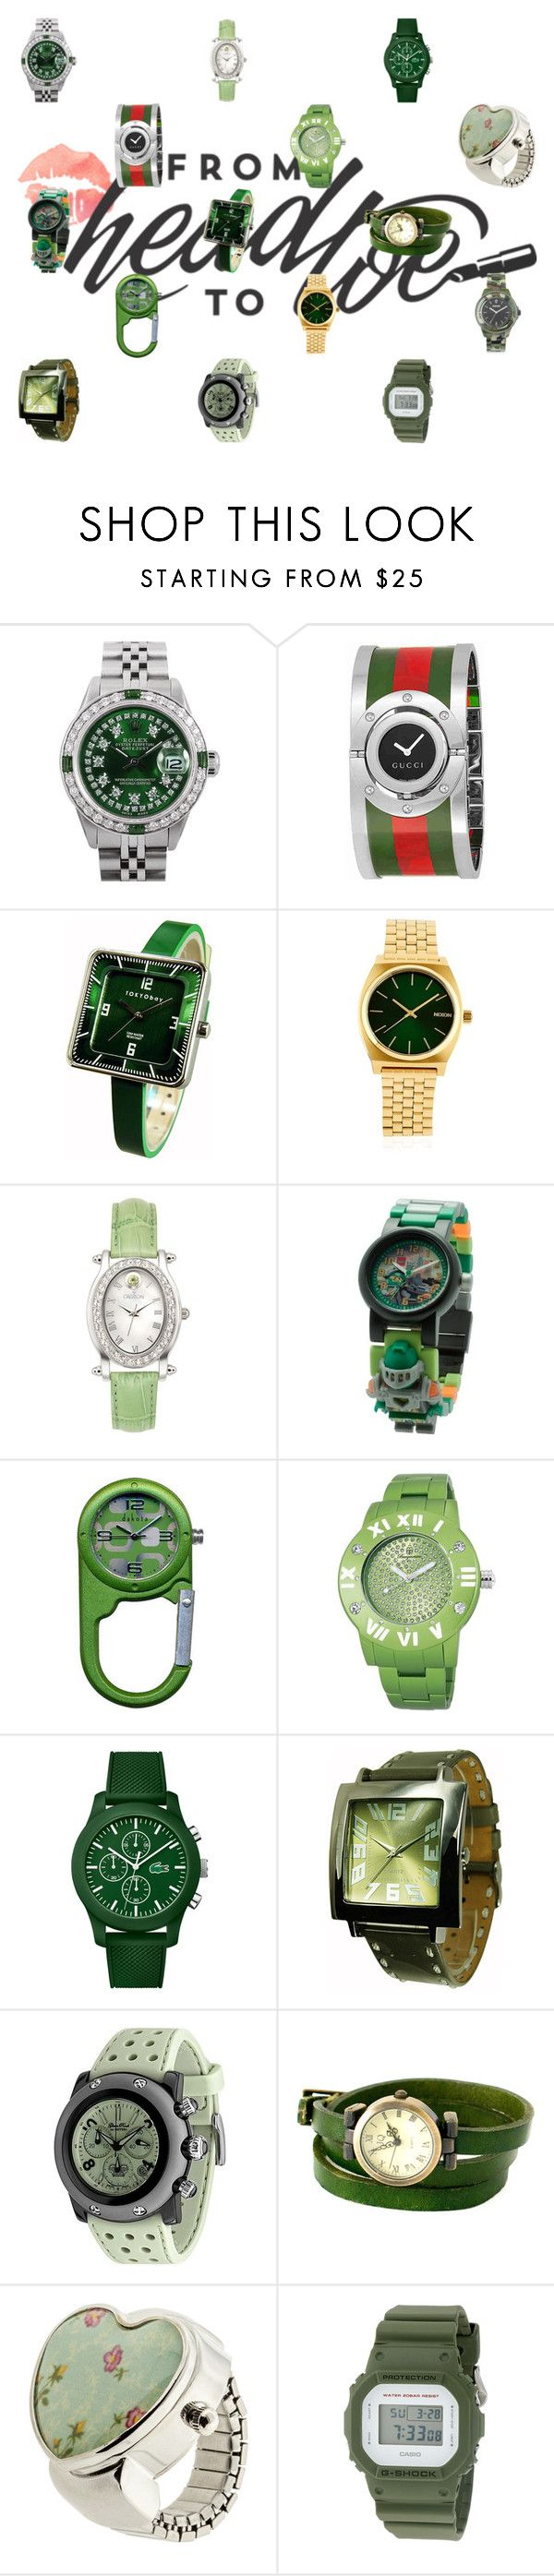 """""""Bestie #17"""" by quinn-avina ❤ liked on Polyvore featuring Rolex, Gucci, TOKYObay, Nixon, Croton, Lego, Lacoste, Glam Rock, Decree and G-Shock"""